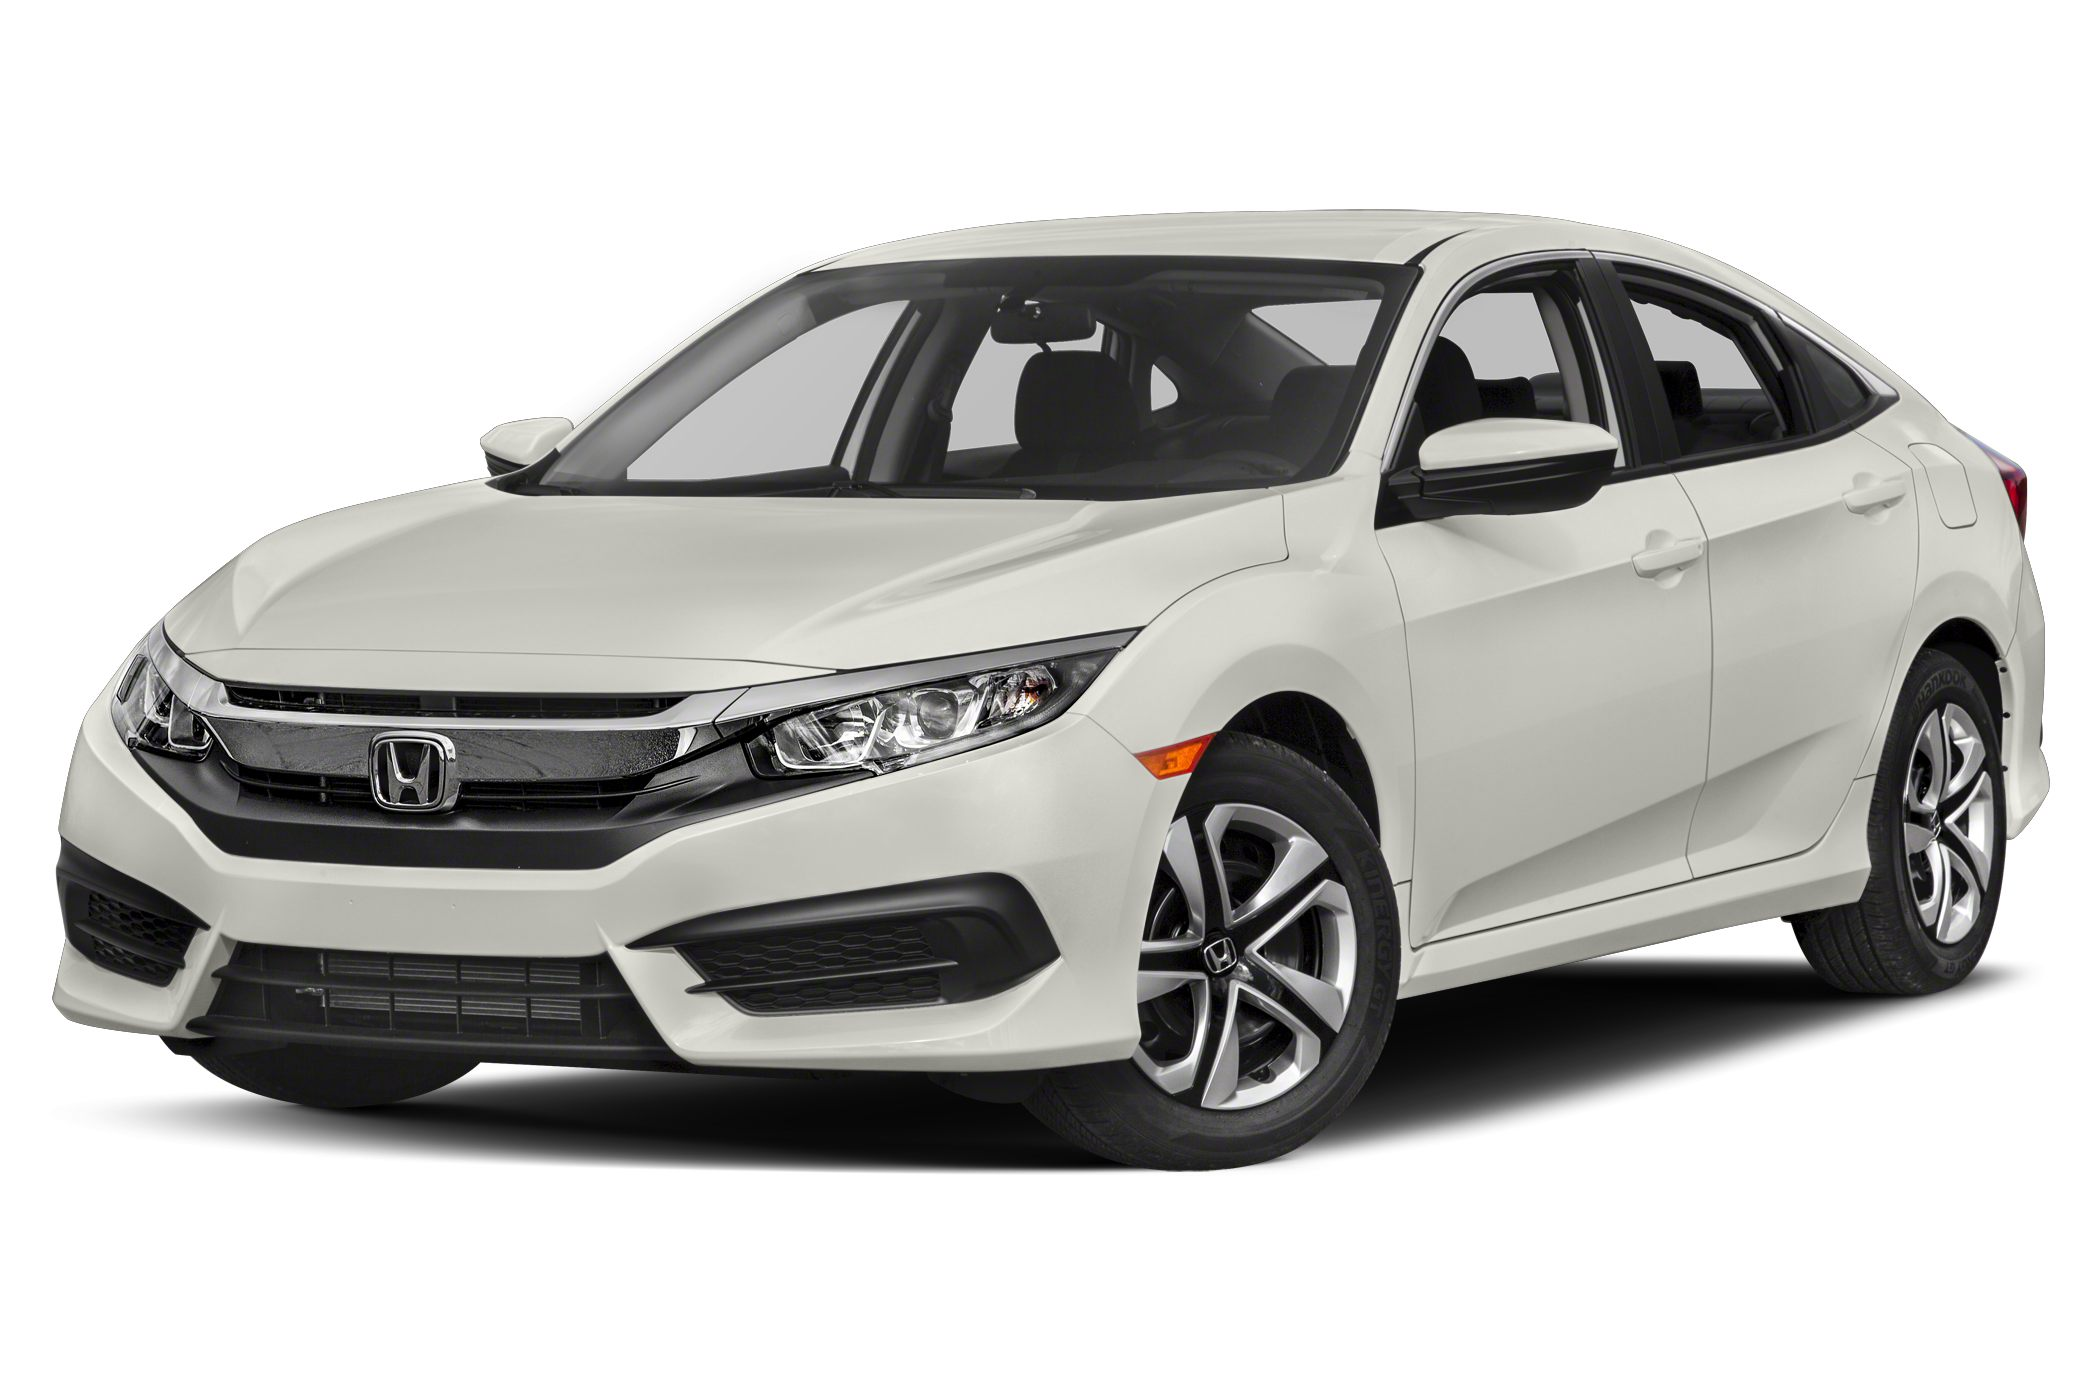 2017 Honda Civic Photos